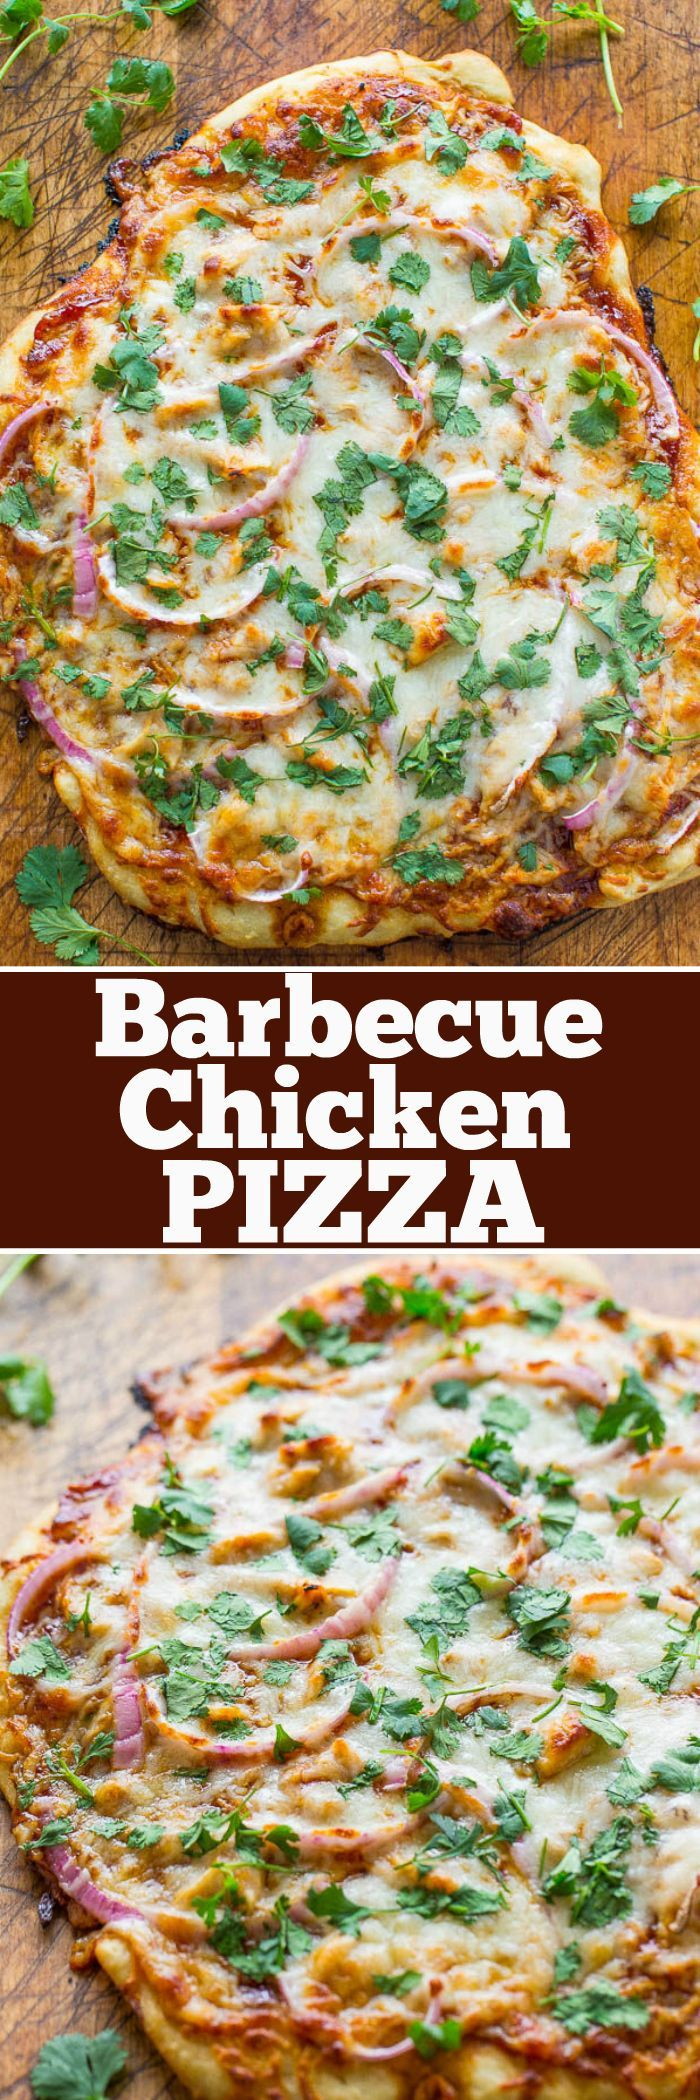 Barbecue Chicken Pizza - A COPYCAT version of California Pizza Kitchen's bbq chicken pizza that you can make at home in 15 minutes!! EASY, loaded with juicy chicken, red onions, cilantro, and lots of cheese!!